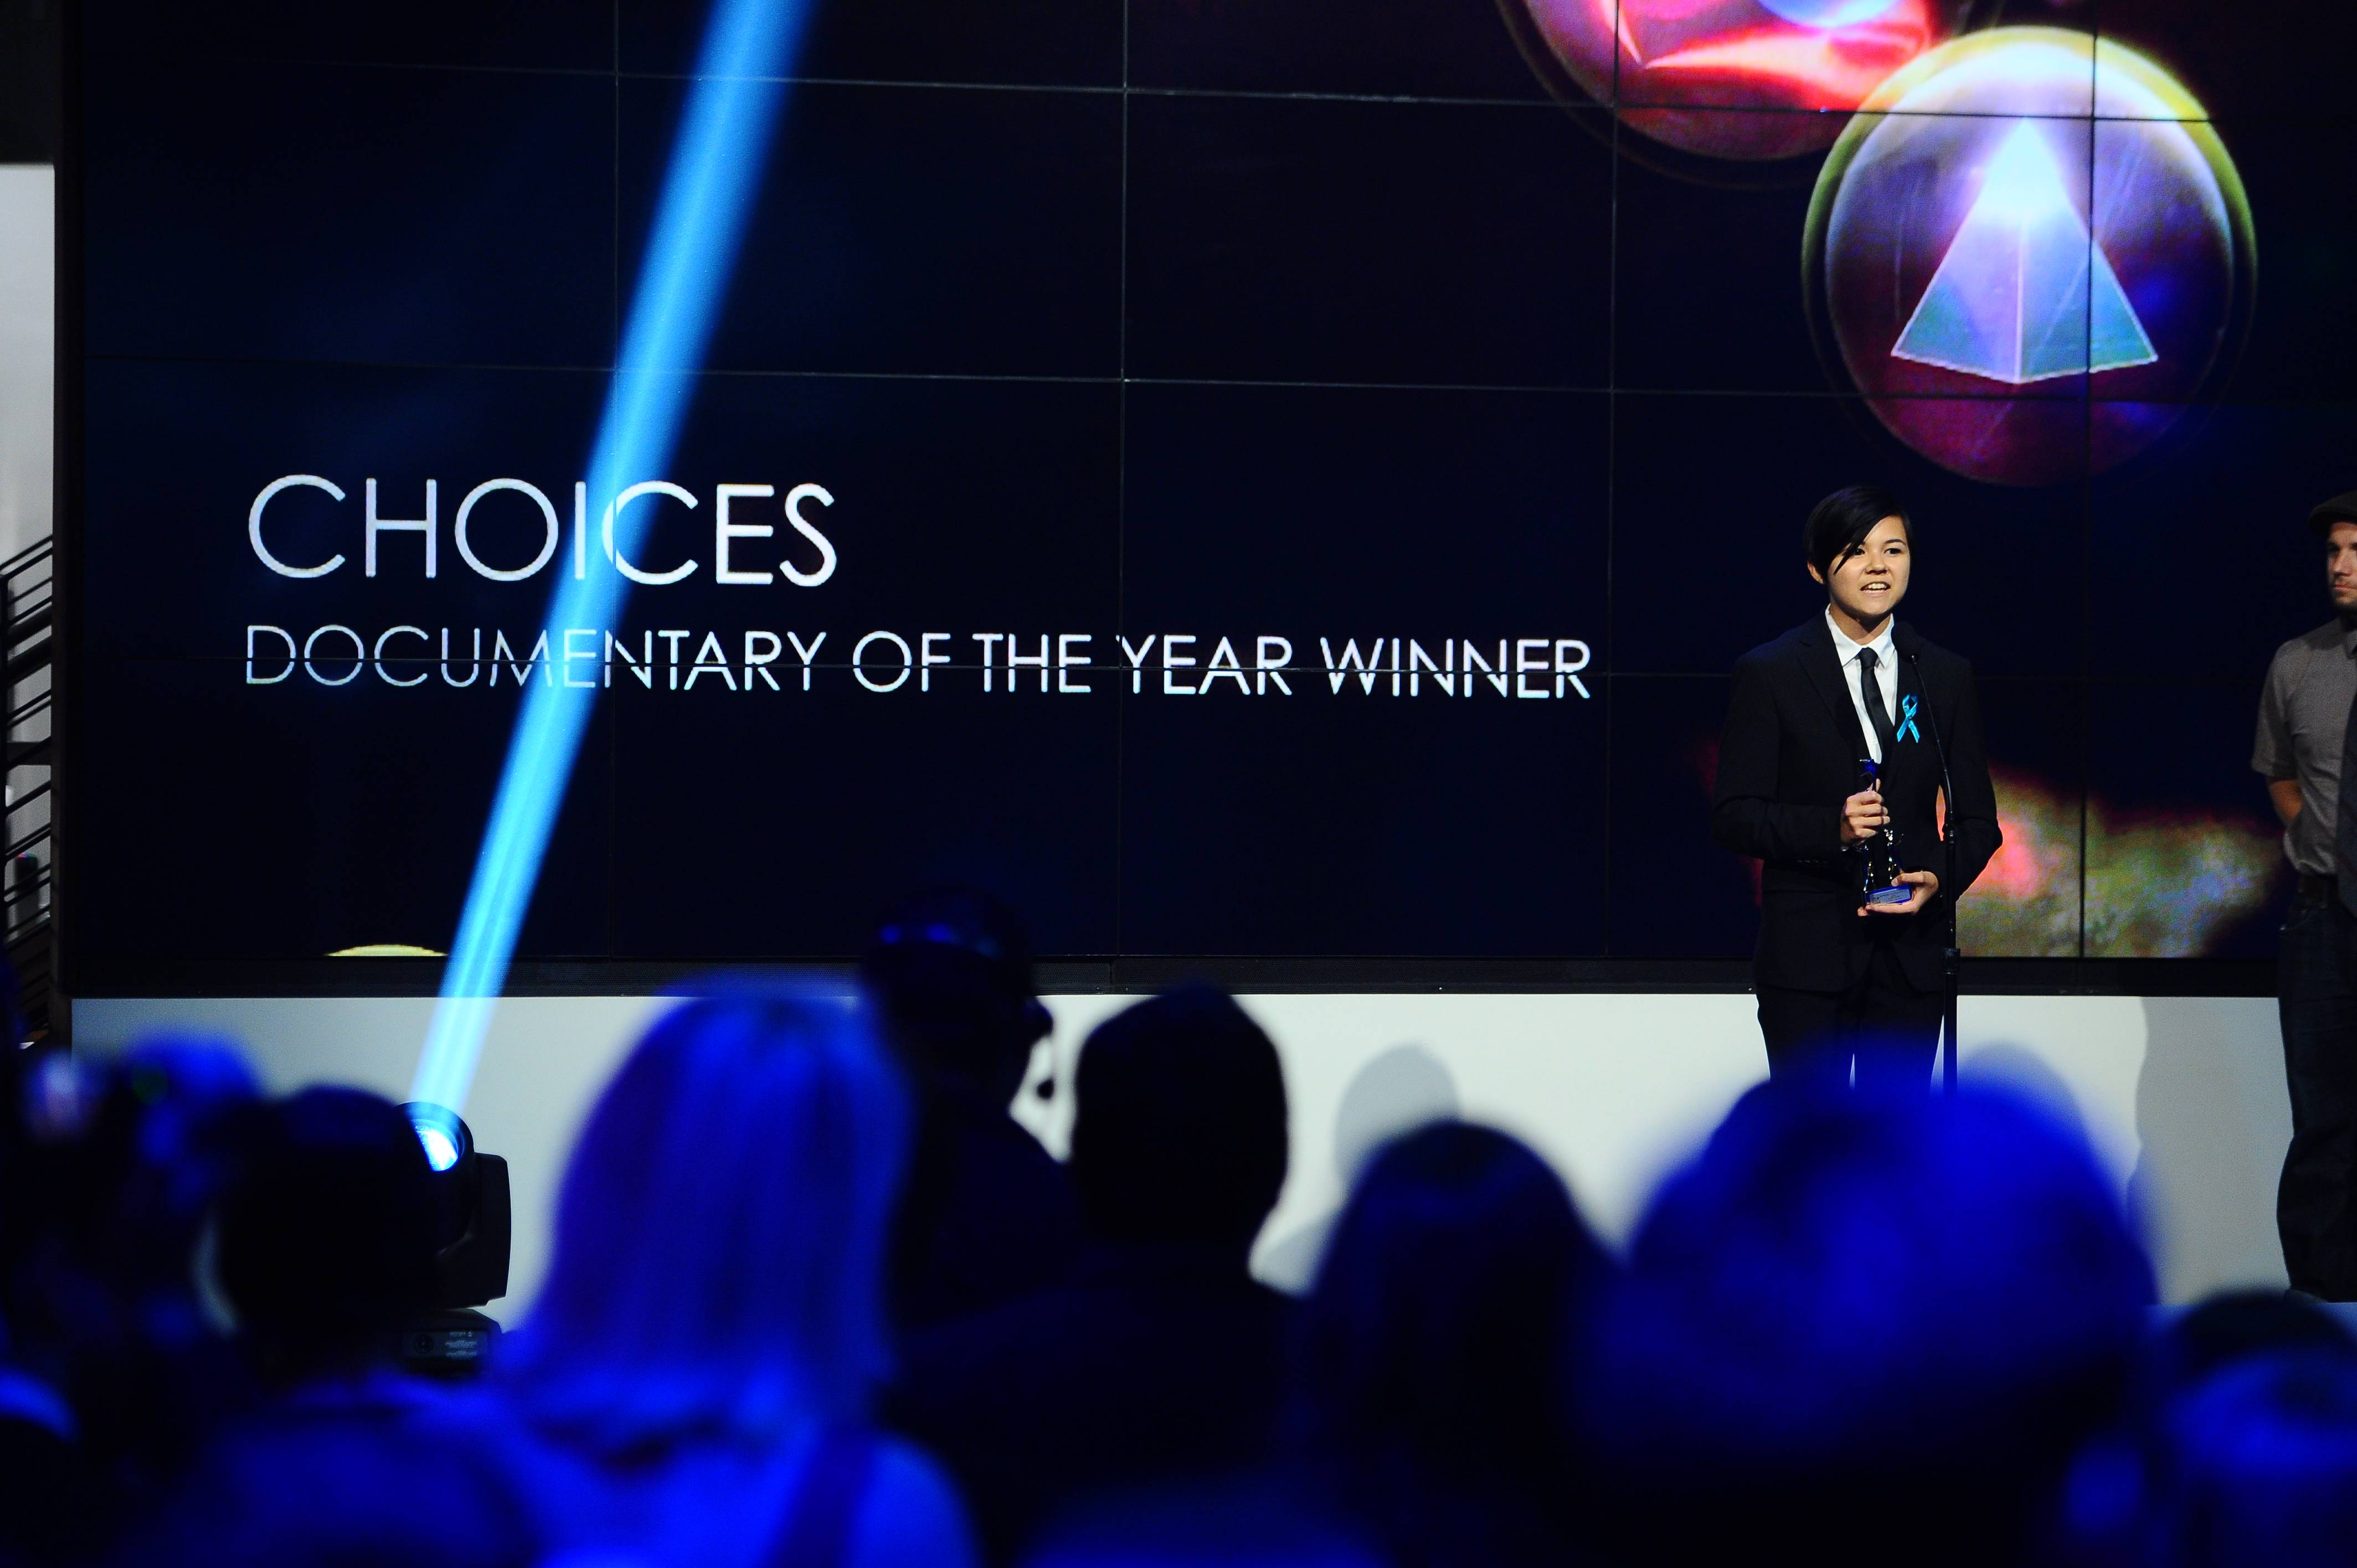 Choices: Documentary of the Year